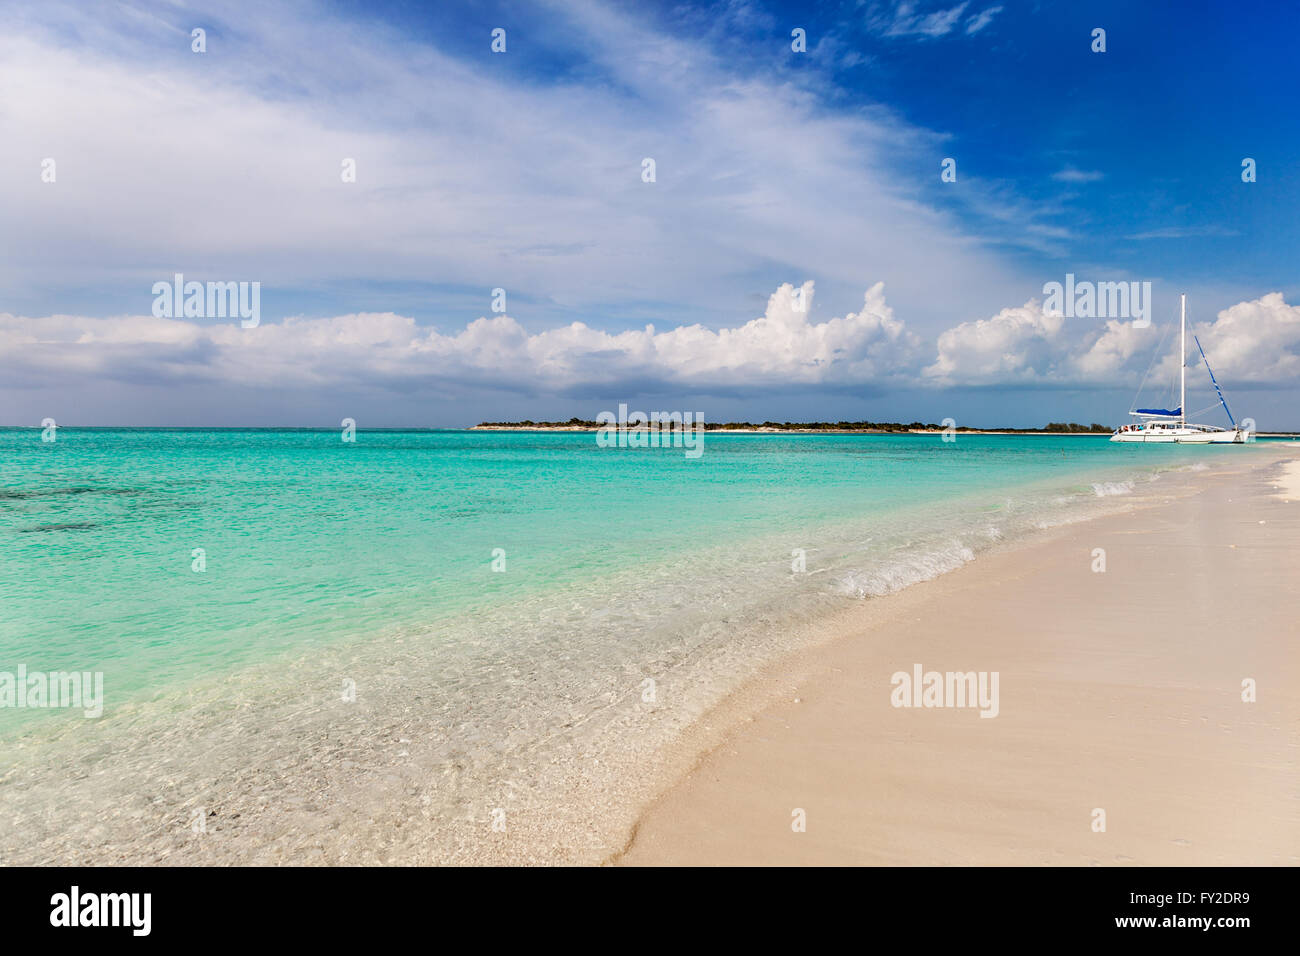 Catamaran on deserted white sand beach - Stock Image